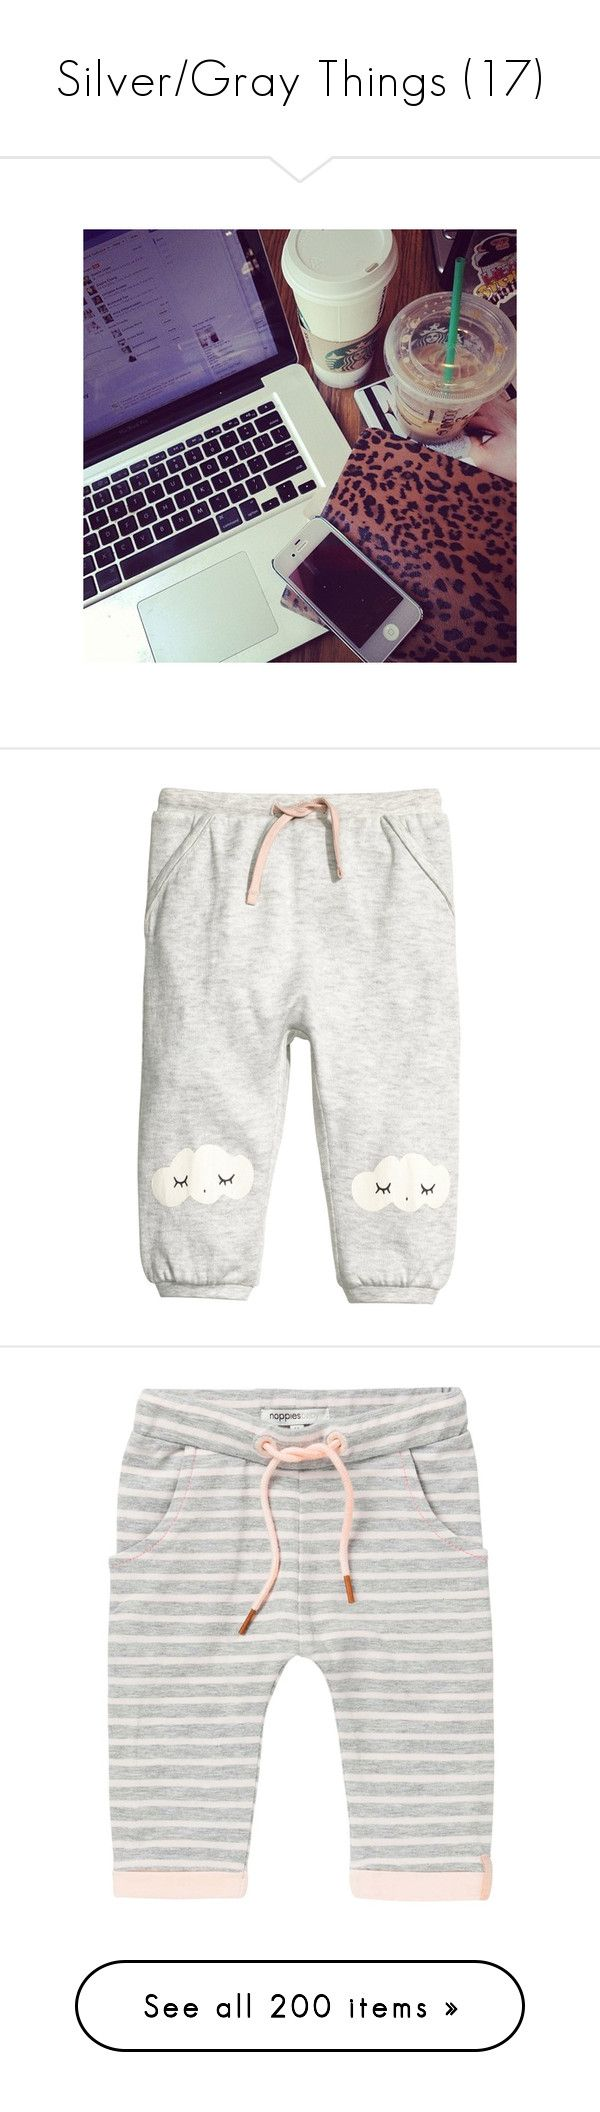 """Silver/Gray Things (17)"" by bvbtakeover ❤ liked on Polyvore featuring instagram, insta, pictures, tumblr, for instagram, pants, h&m trousers, print pants, white trousers and ribbed pants"